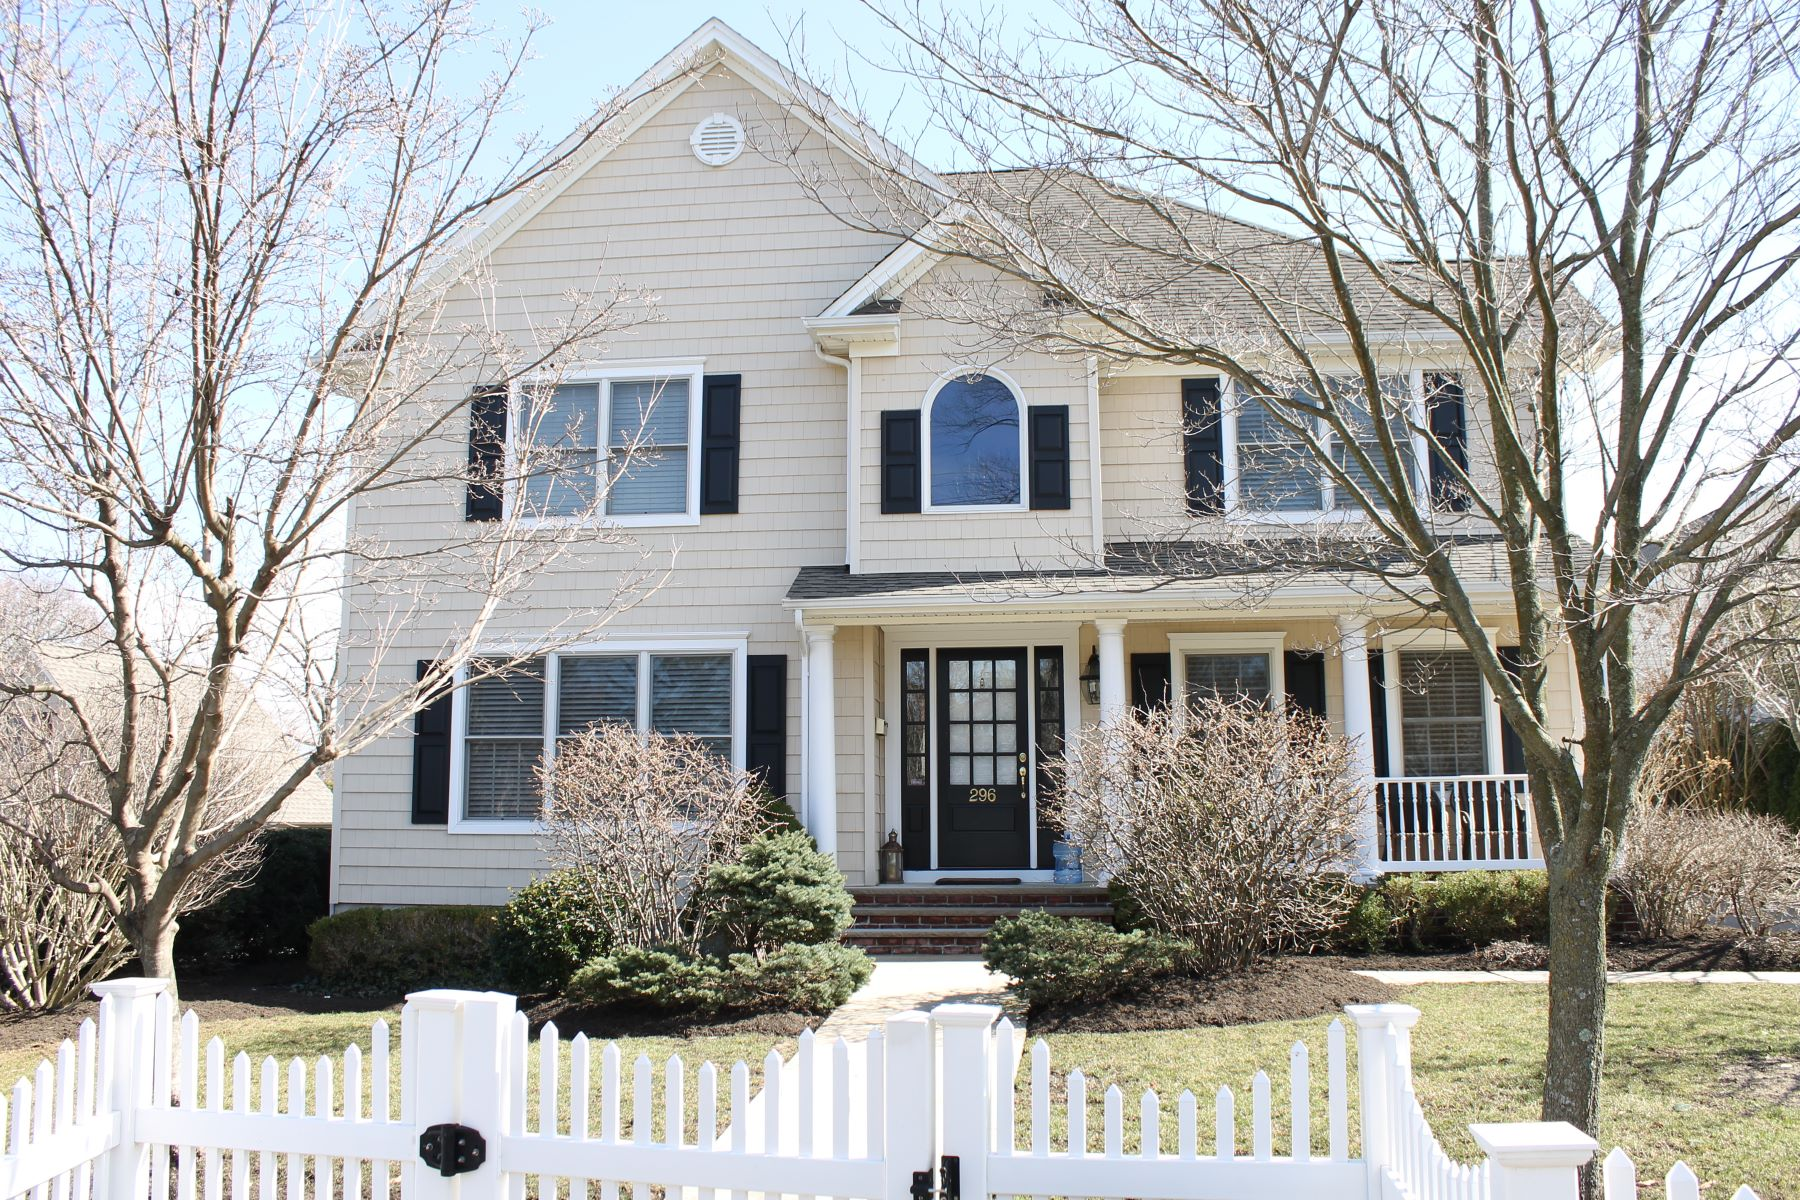 Single Family Home for Sale at 296 River Road Red Bank, New Jersey, 07701 United States